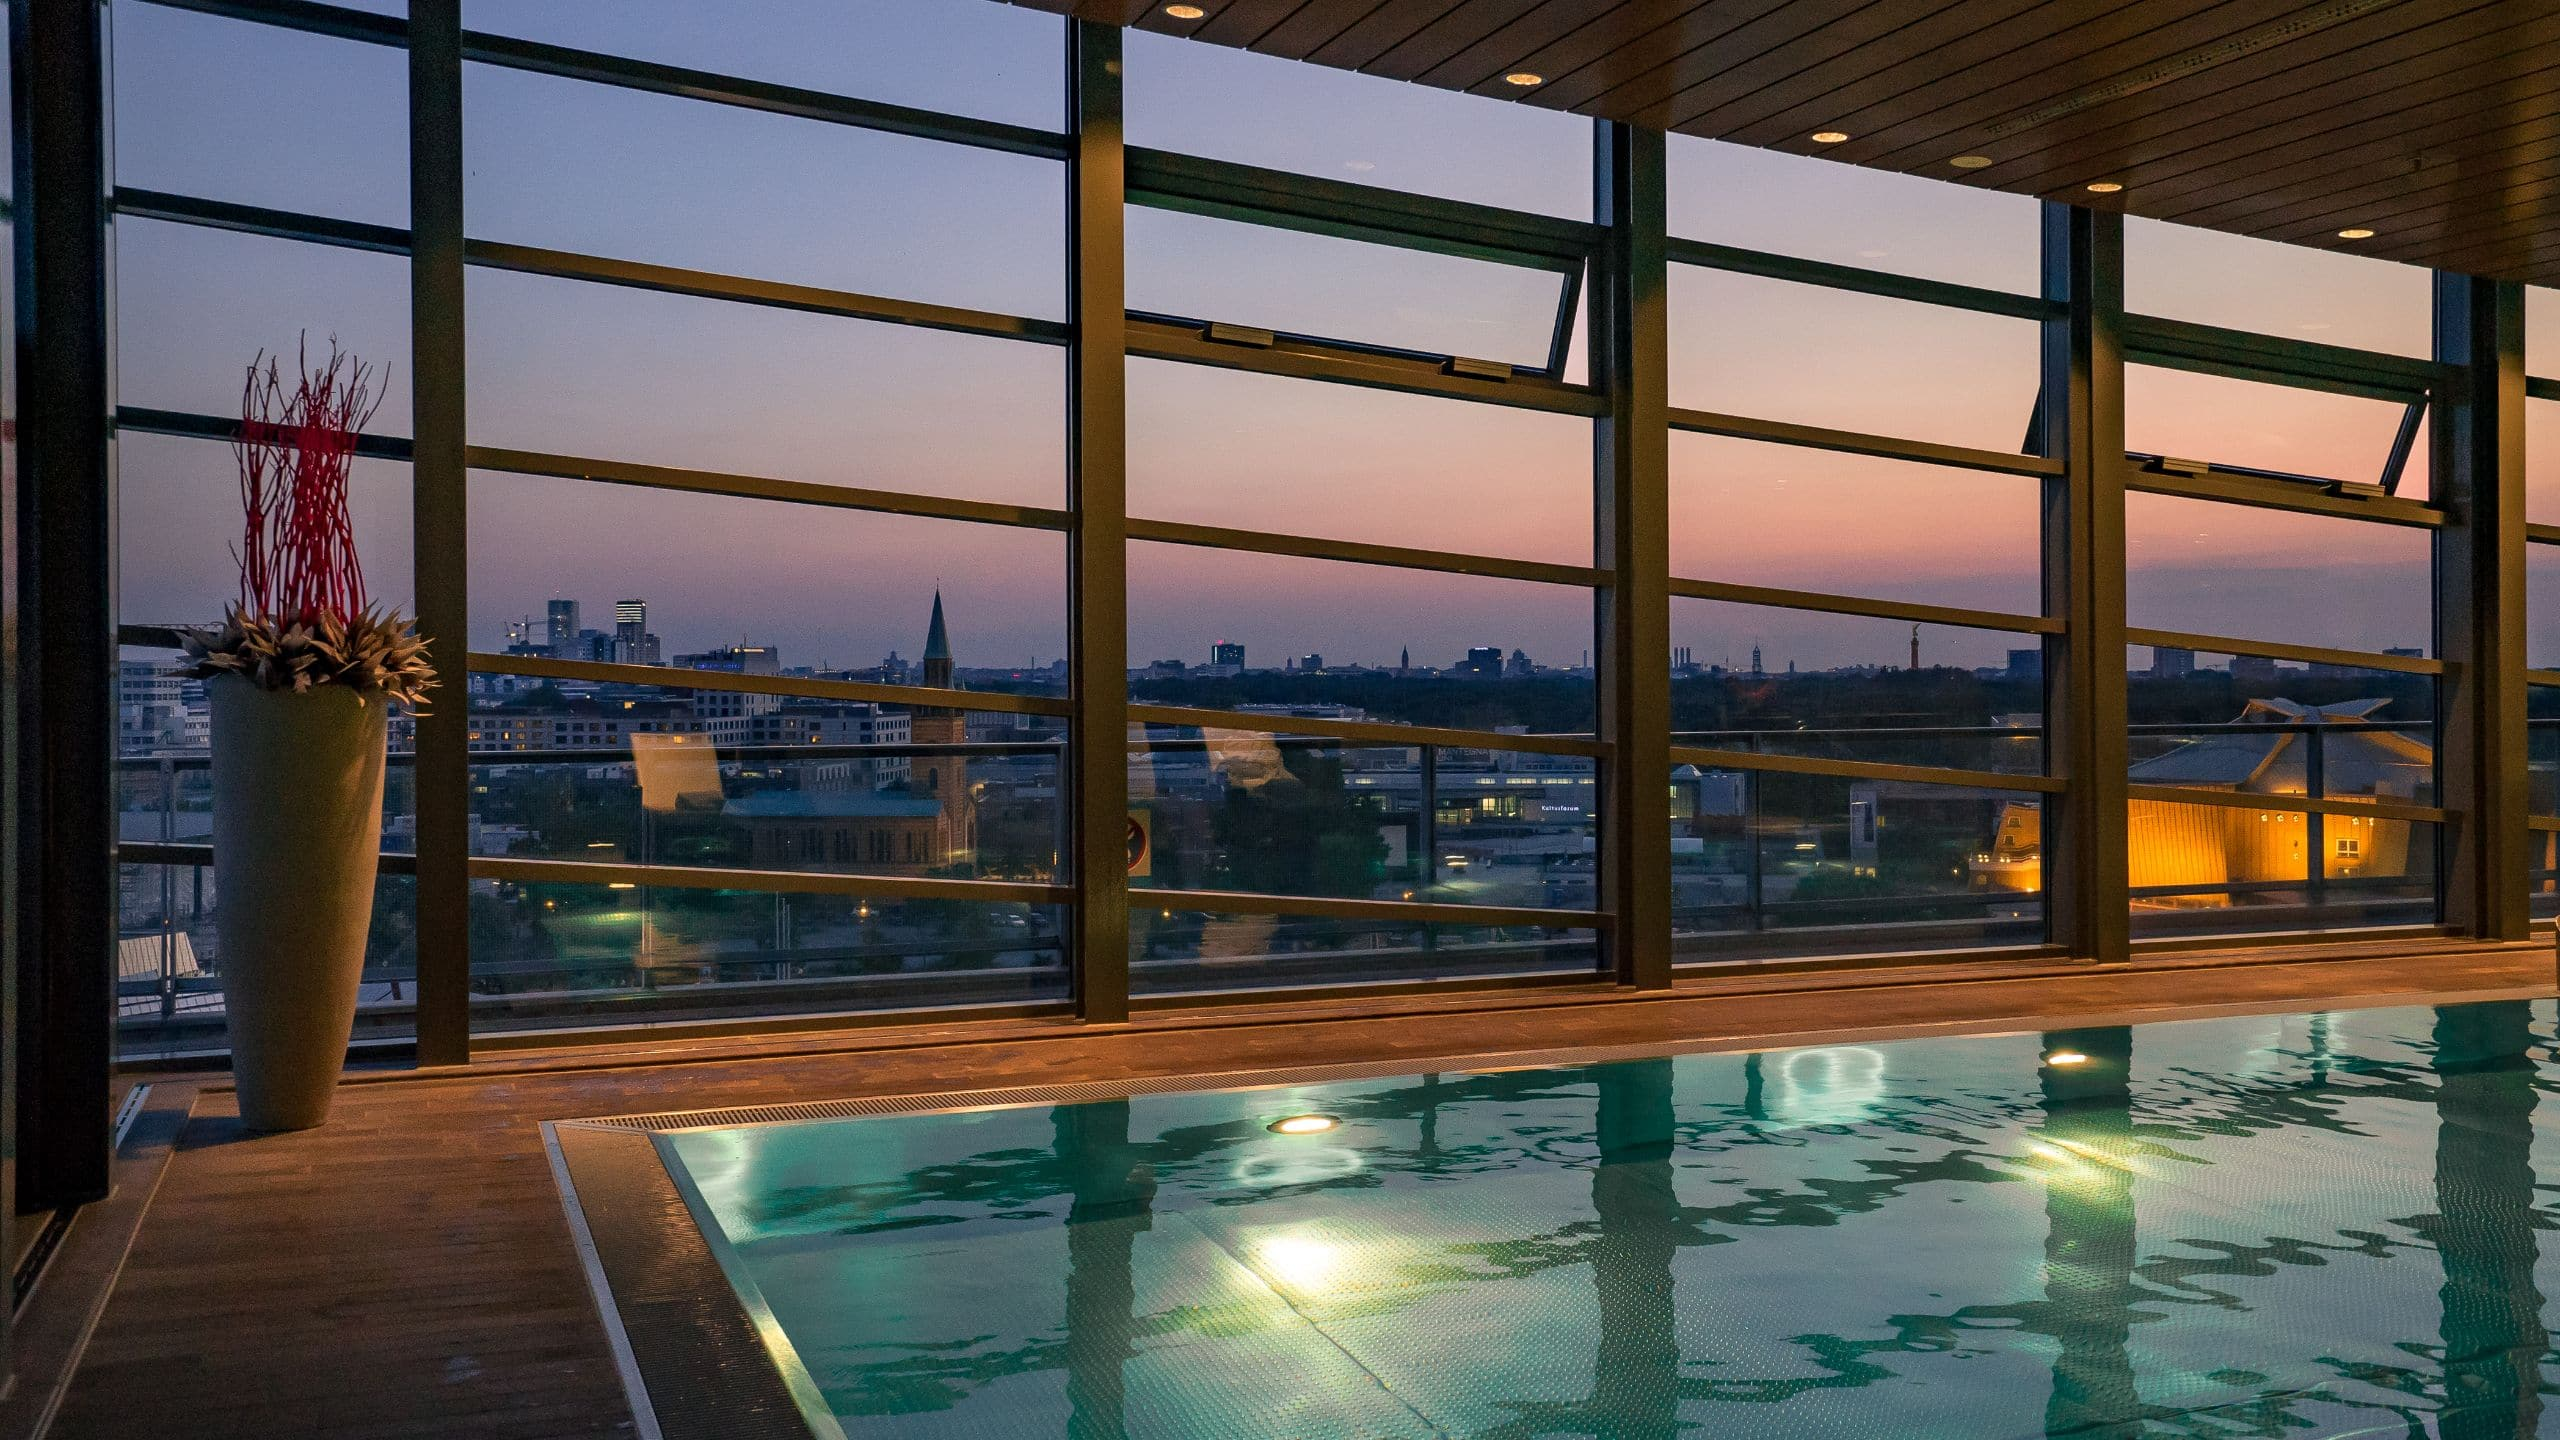 Club Olympus Spa & Fitness Sunset View